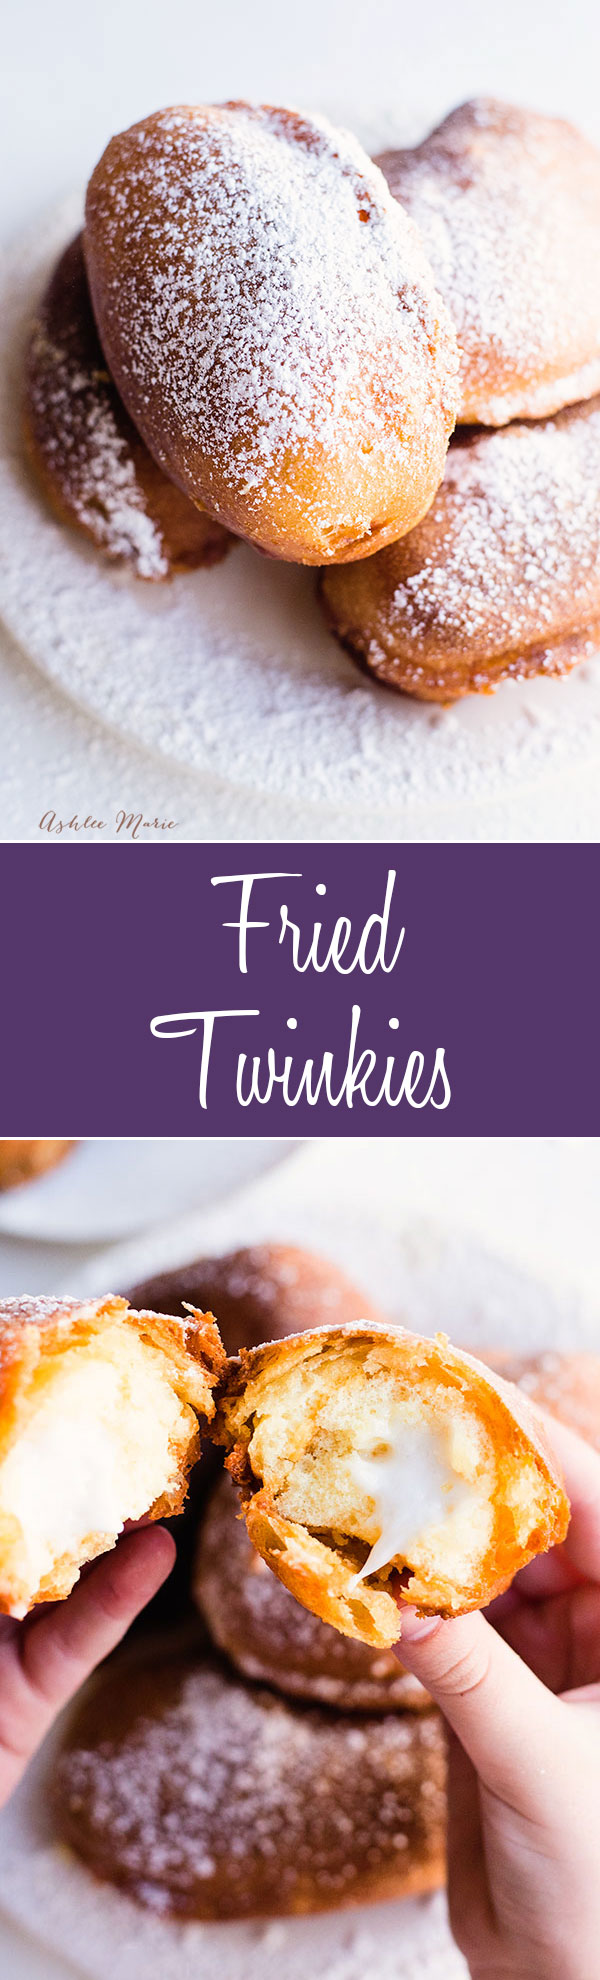 dunk a twinkie into a sweet batter and fry for a warm delicious treat - recipe and video tutorial